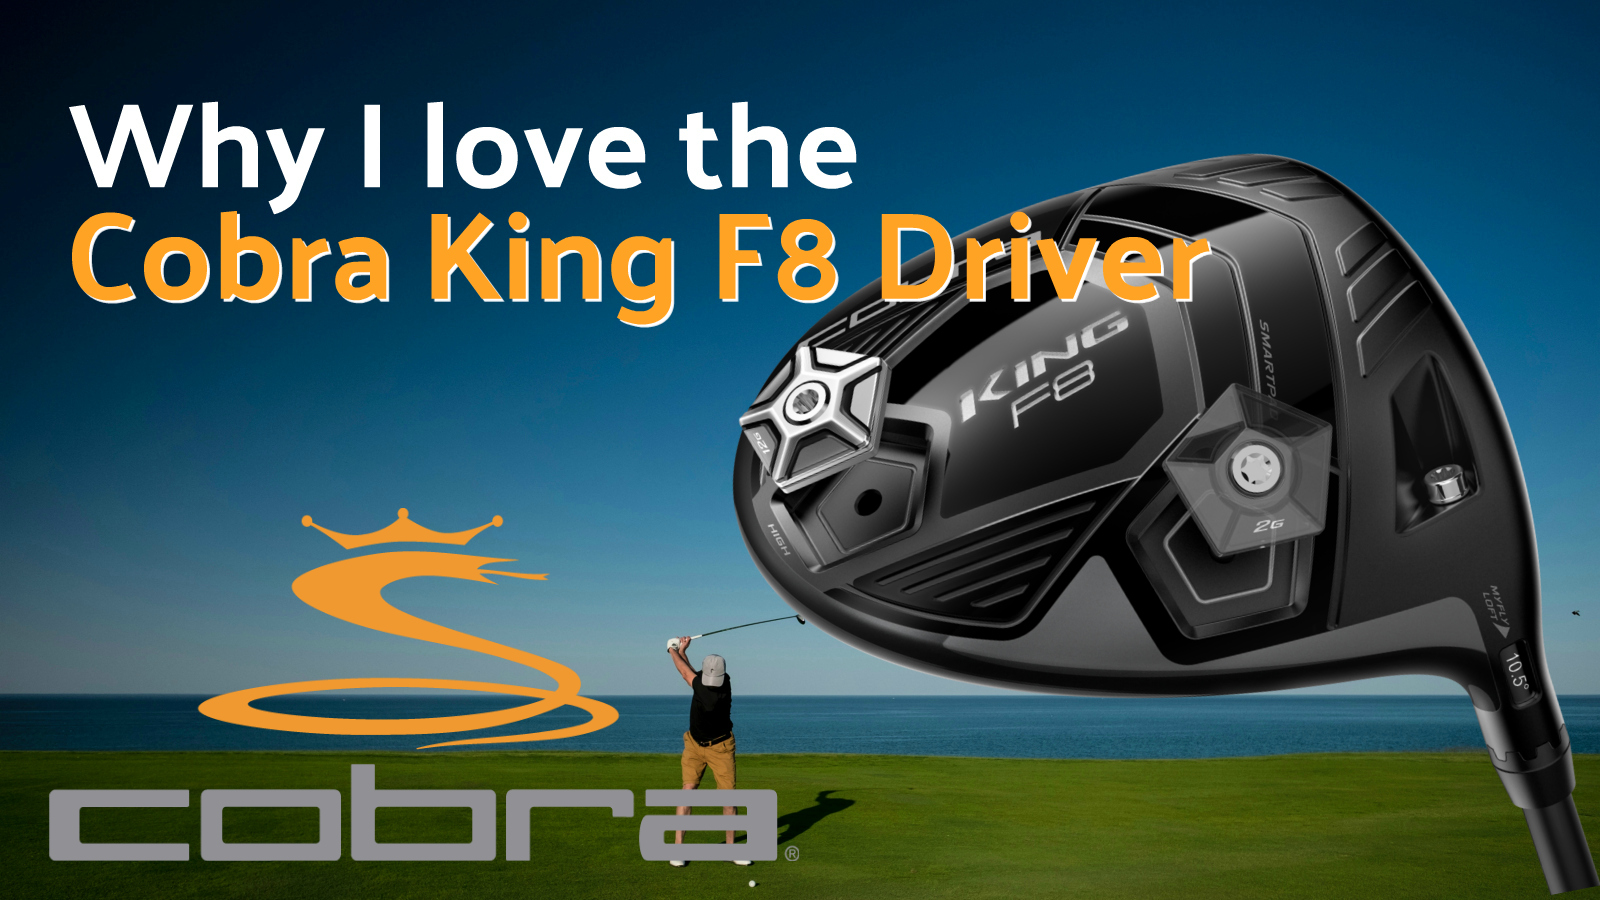 Cobra King f8 driver review from Just Say Golf